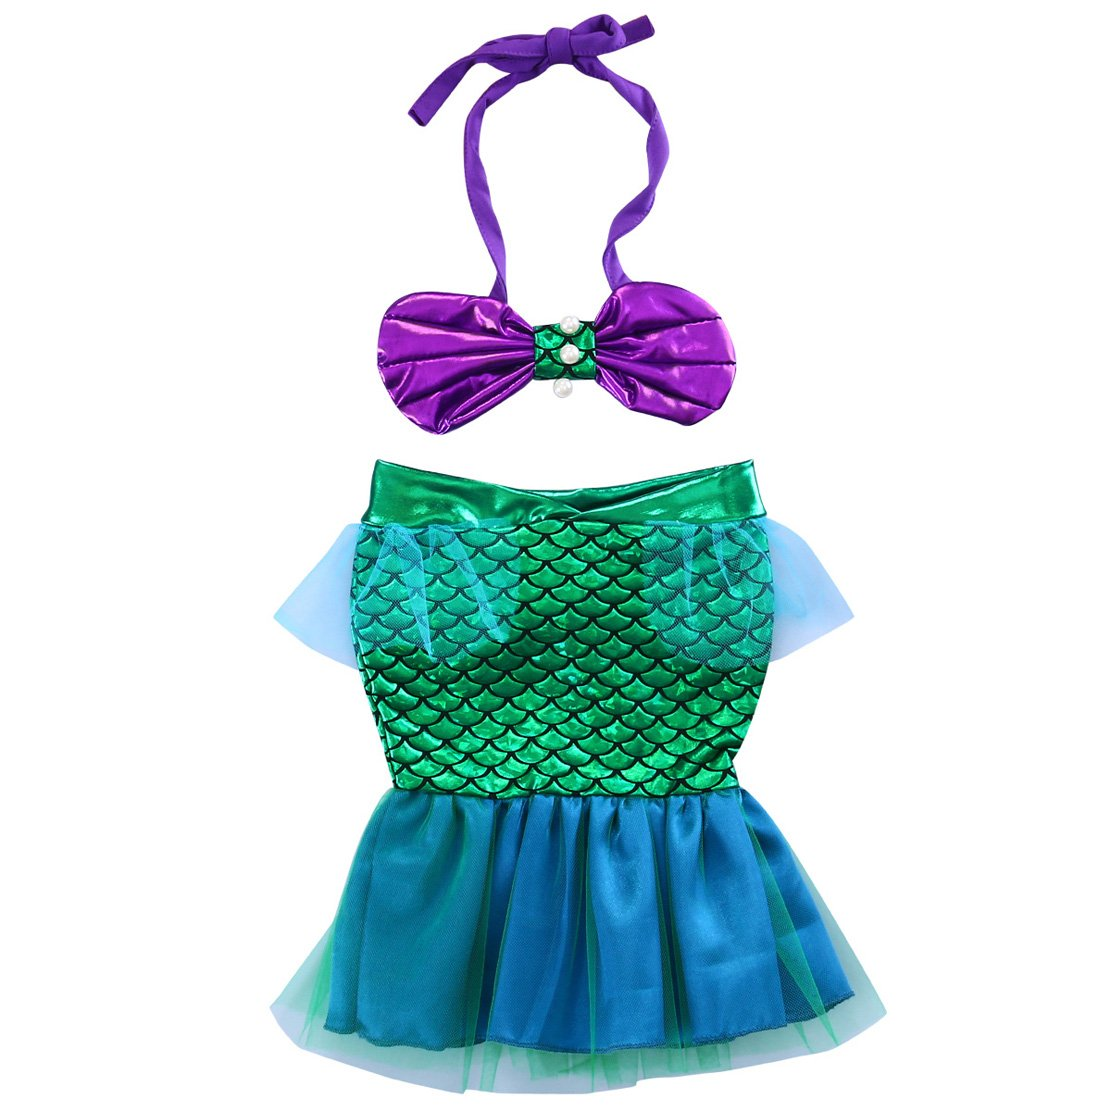 Toddler Baby Girls Halter Bow Crop Top+Green Mesh Mermaid Skirt Swimsuit Kids Clothes for Photo Shoot baby swimwear